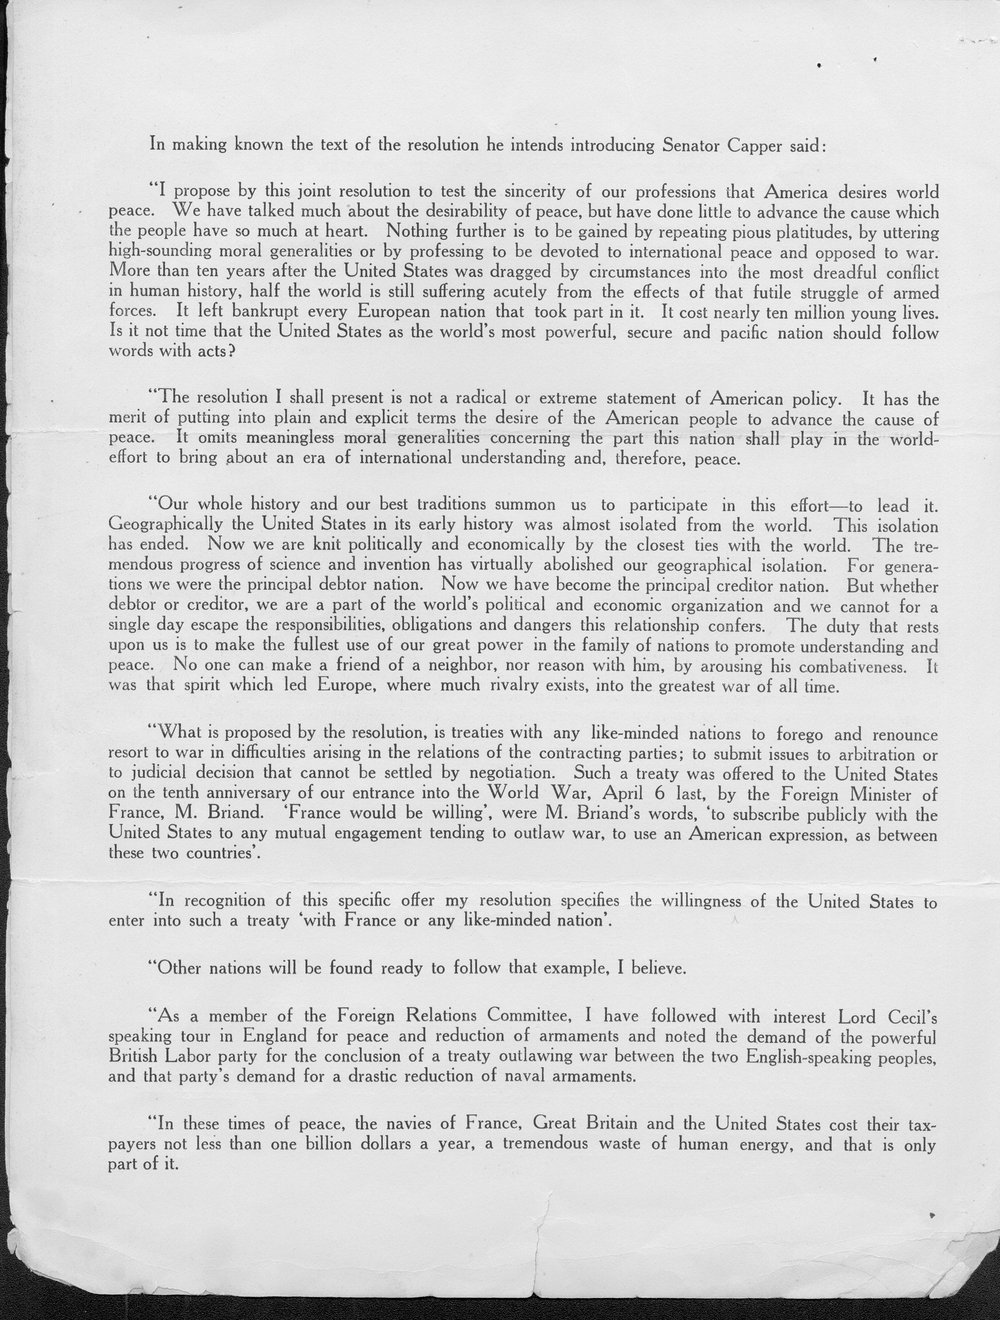 Senator Capper's proposed reply to the Briand Peace Offer - 2